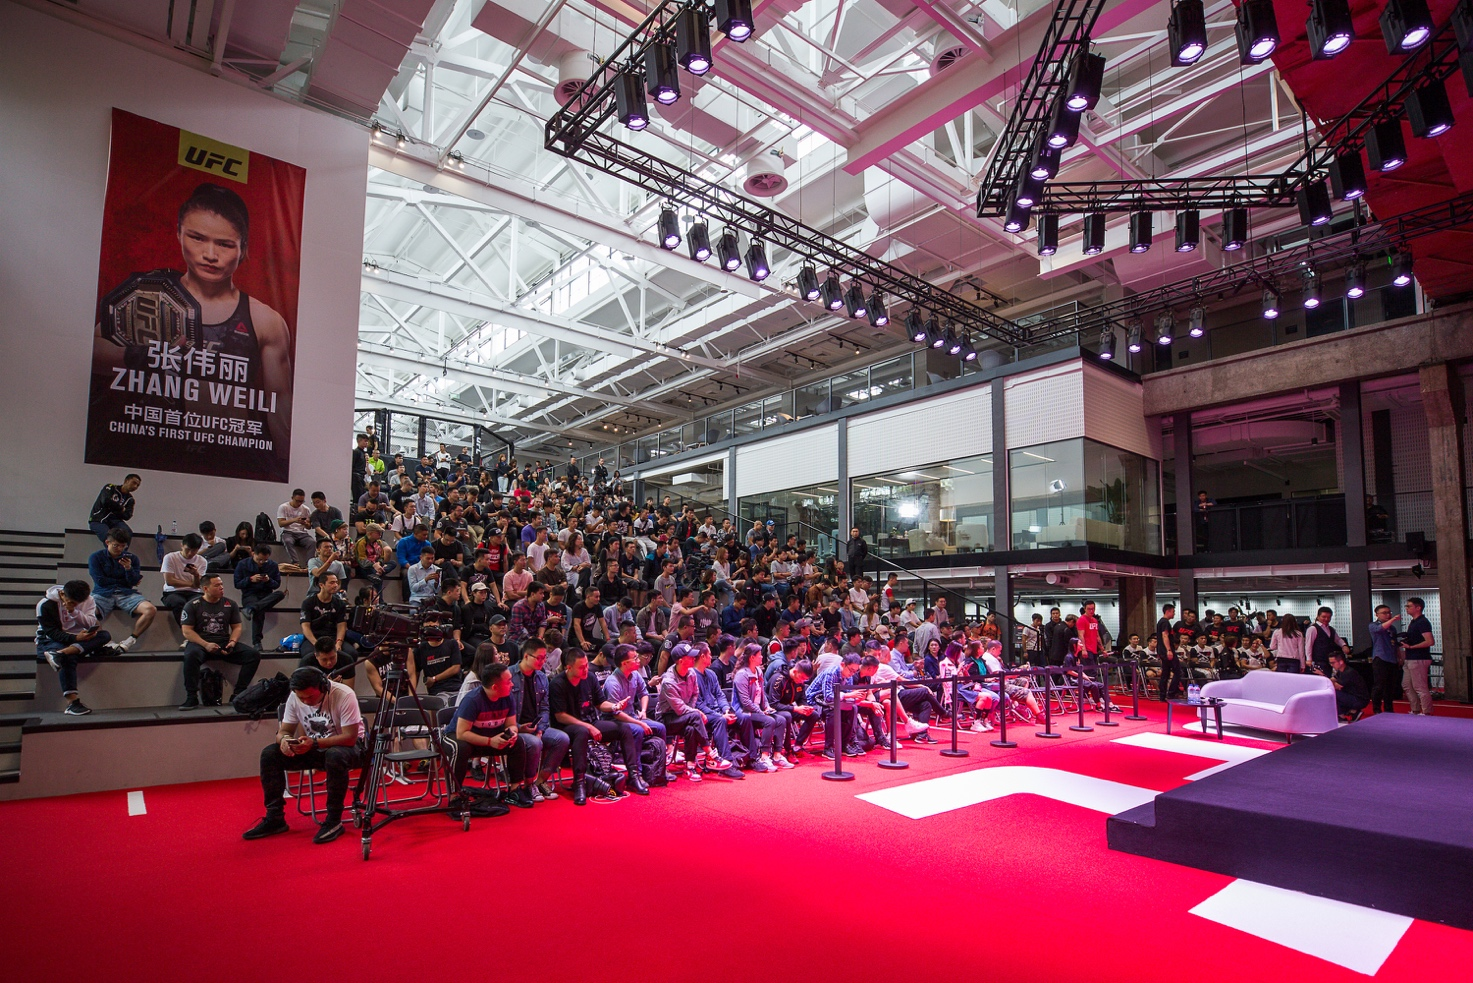 UFC to launch DANA WHITE'S CONTENDER SERIES ASIA in 2020 at the Performance Institute in Shanghai - CONTENDER SERIES ASIA